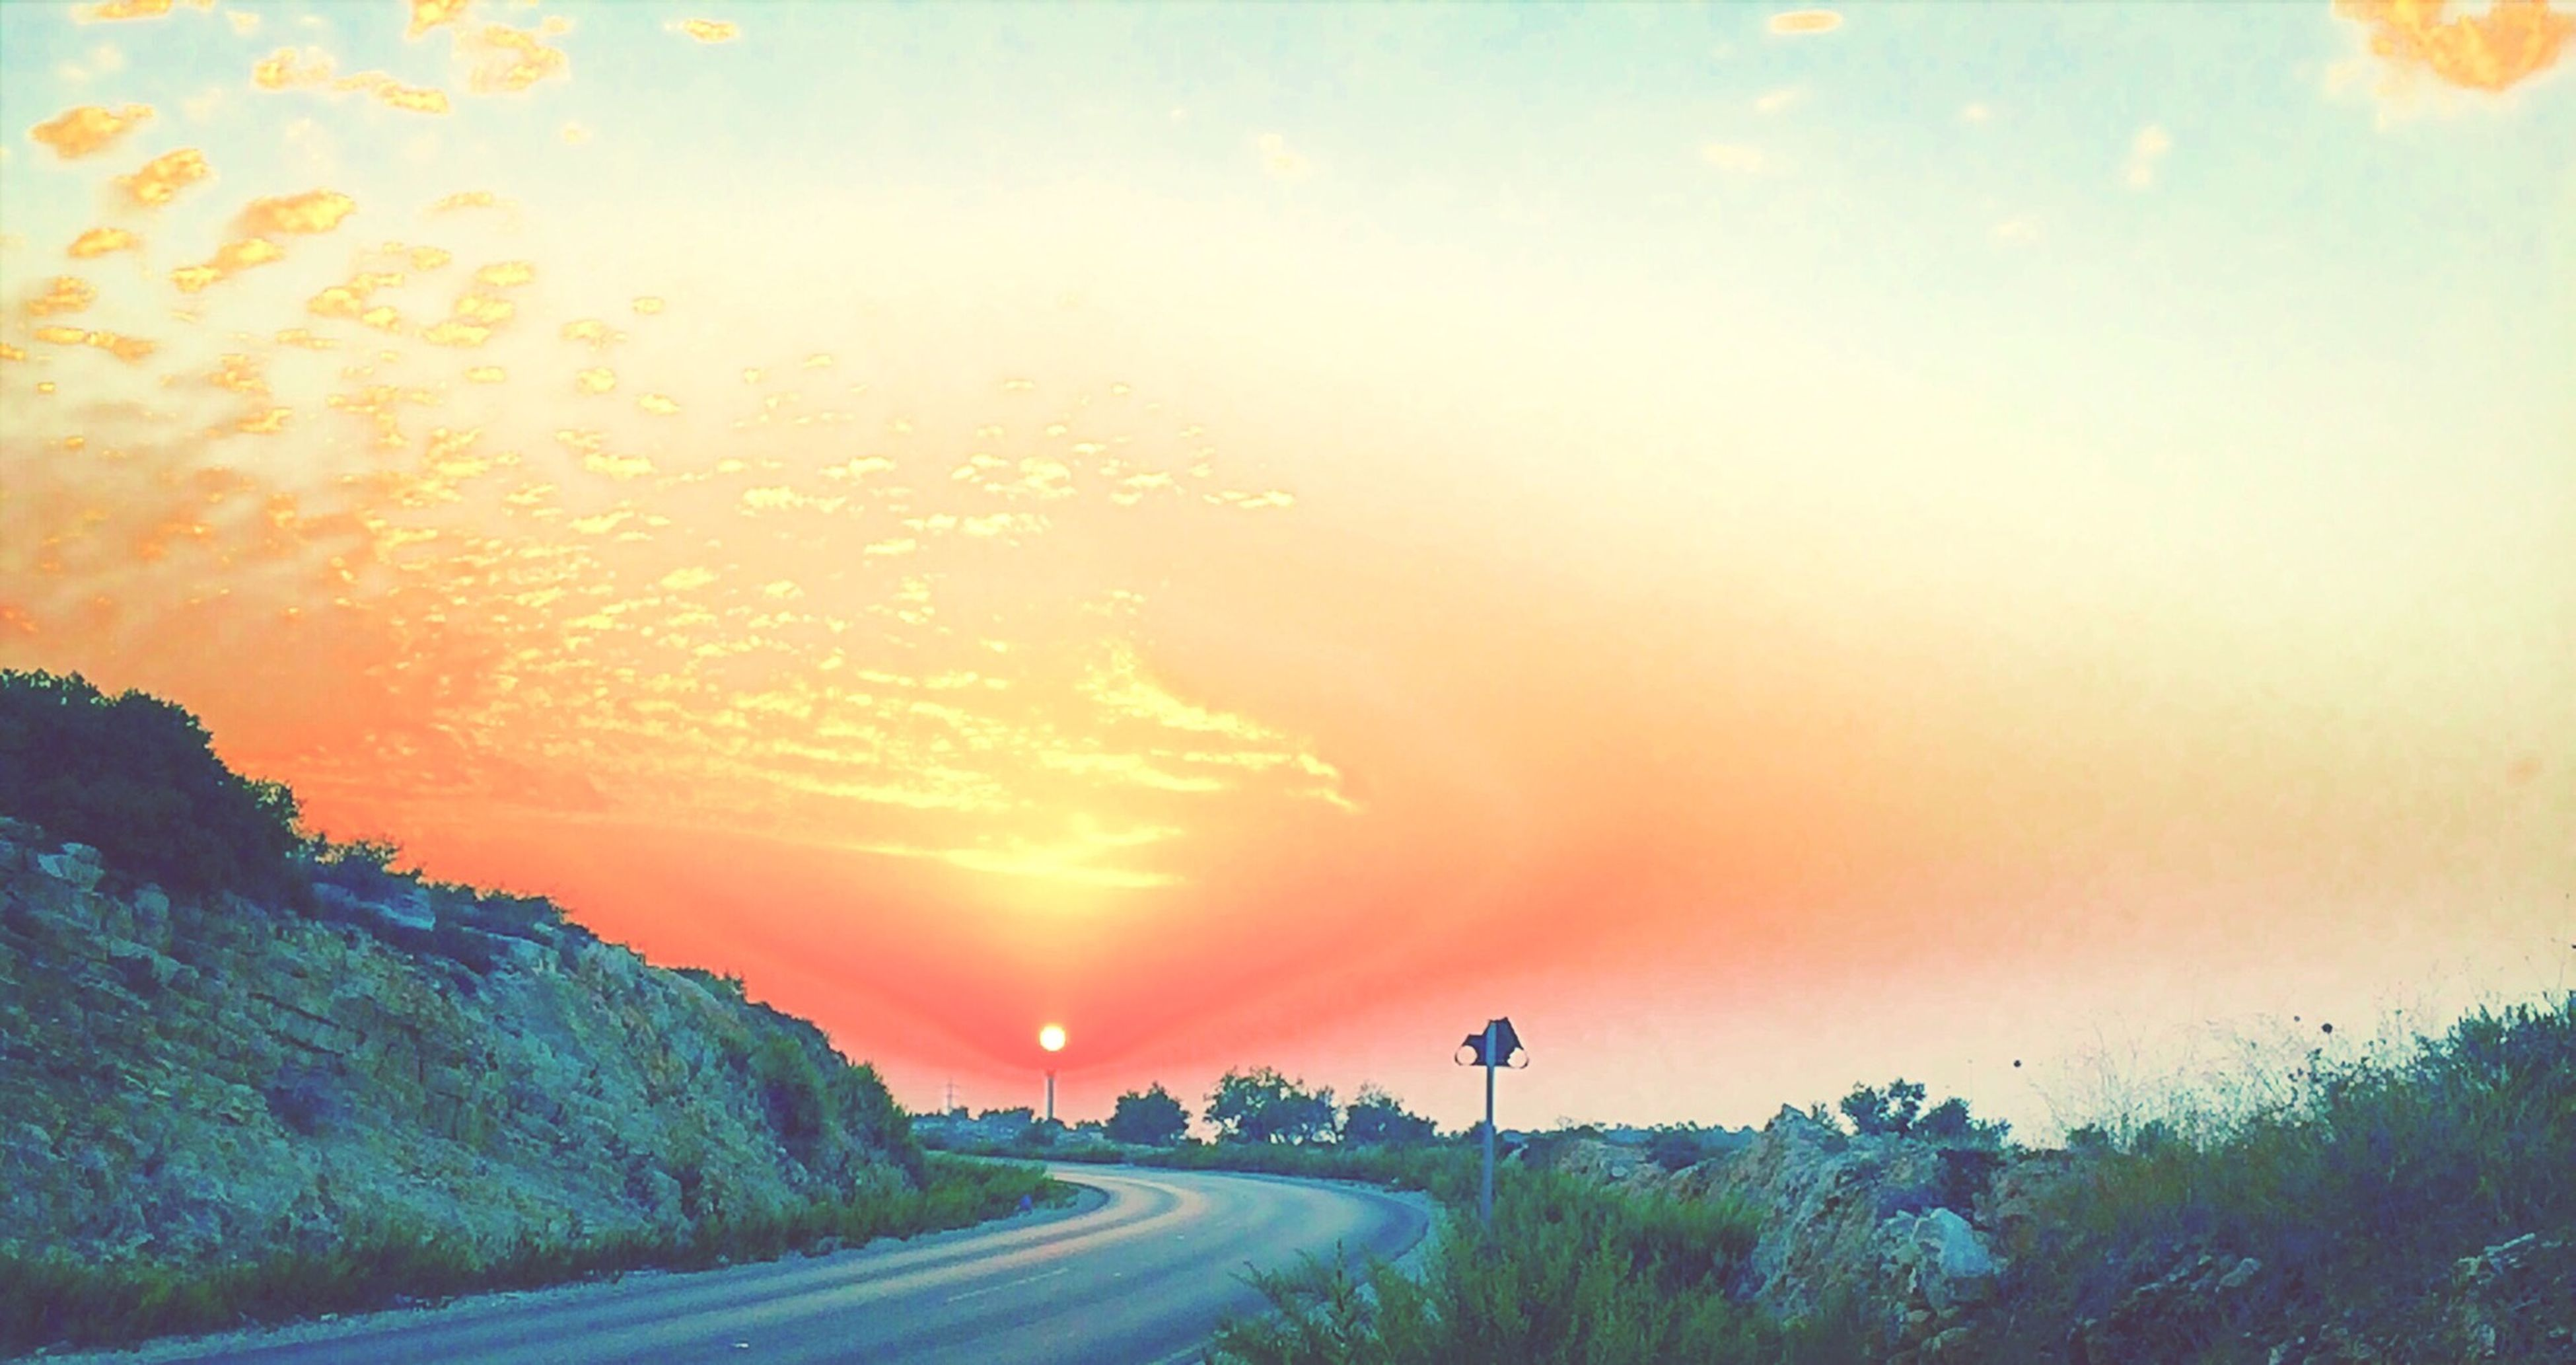 sunset, orange color, sun, sky, scenics, beauty in nature, nature, tranquility, the way forward, road, tranquil scene, cloud - sky, sunbeam, idyllic, sunlight, transportation, water, tree, diminishing perspective, landscape